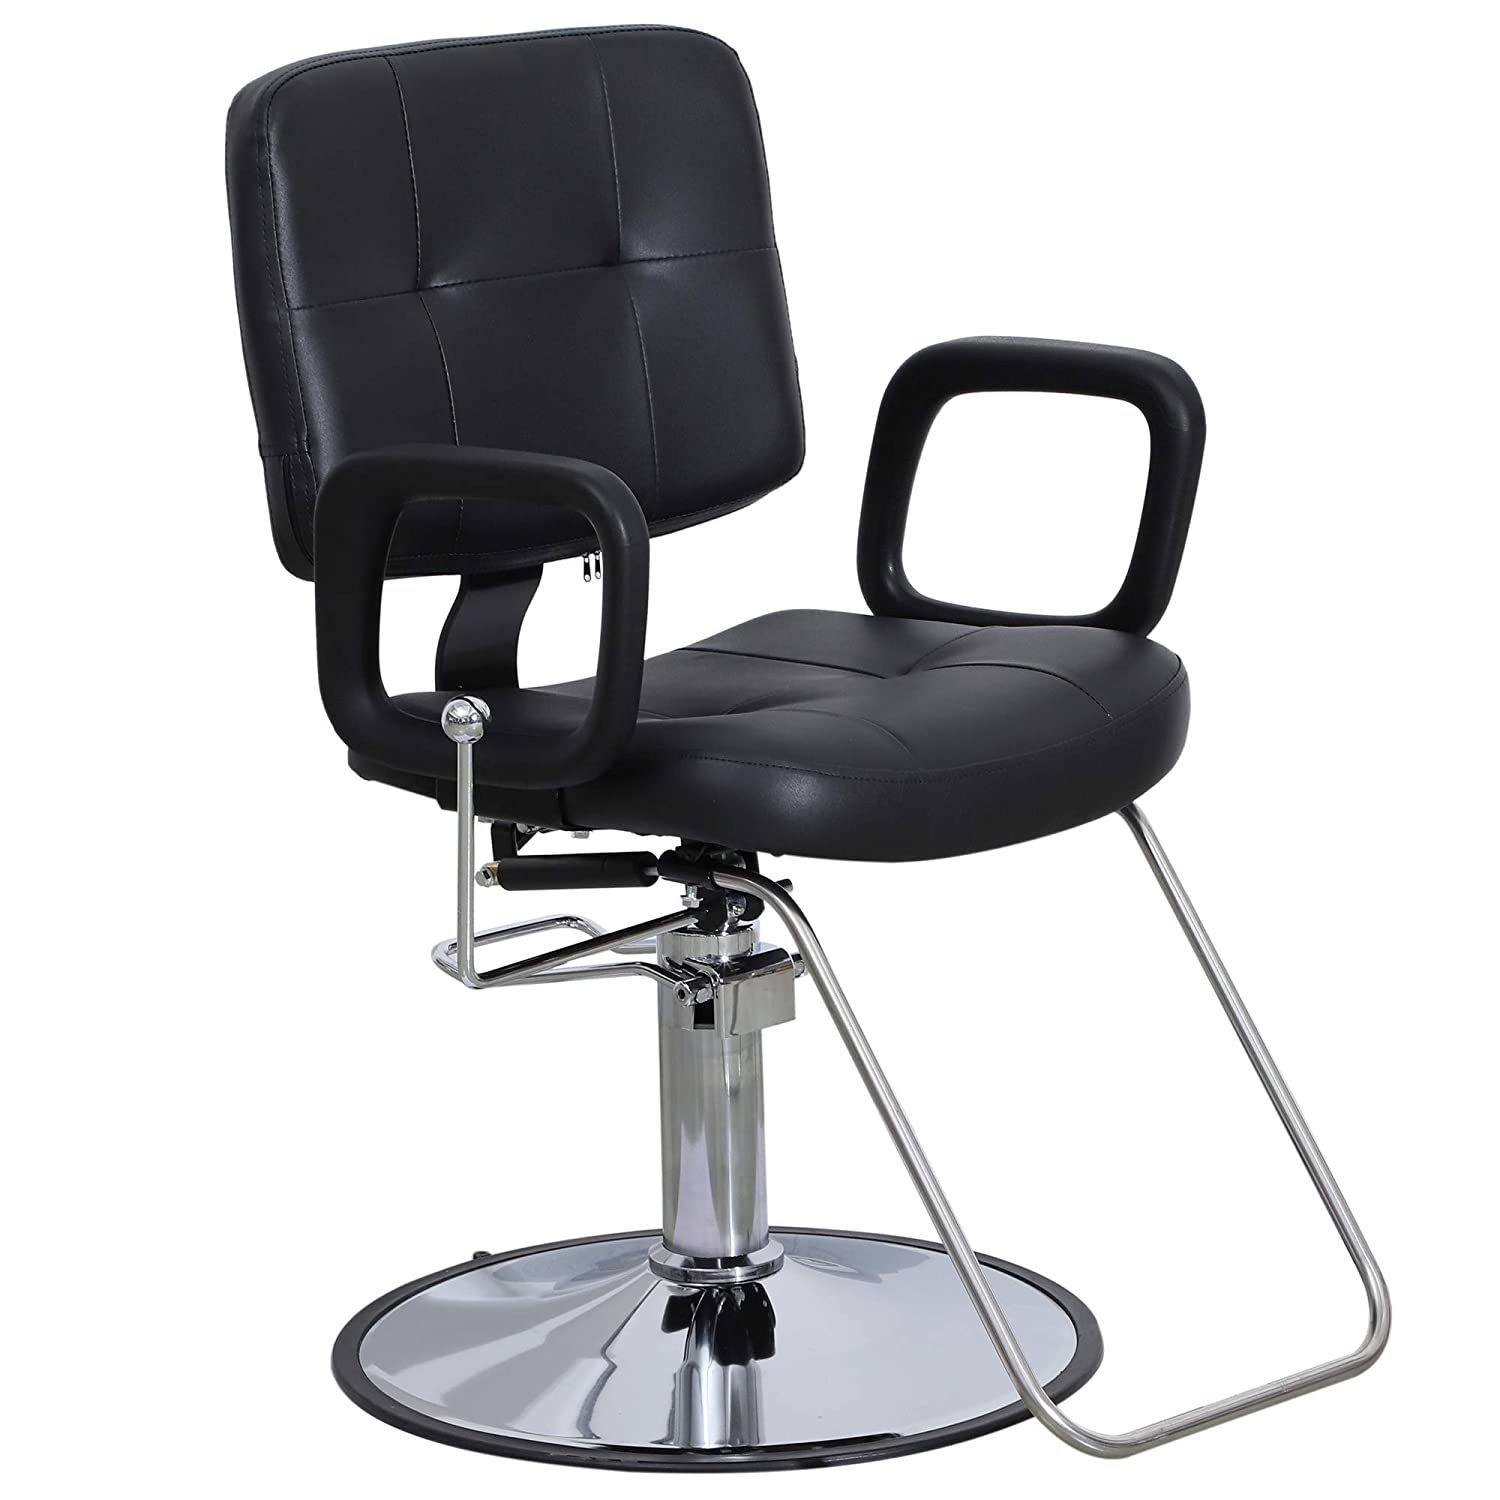 Outstanding Barberpub Reclining Hydraulic Barber Chair Salon Beauty Spa Styling Beauty Chair Black 2058 Short Links Chair Design For Home Short Linksinfo